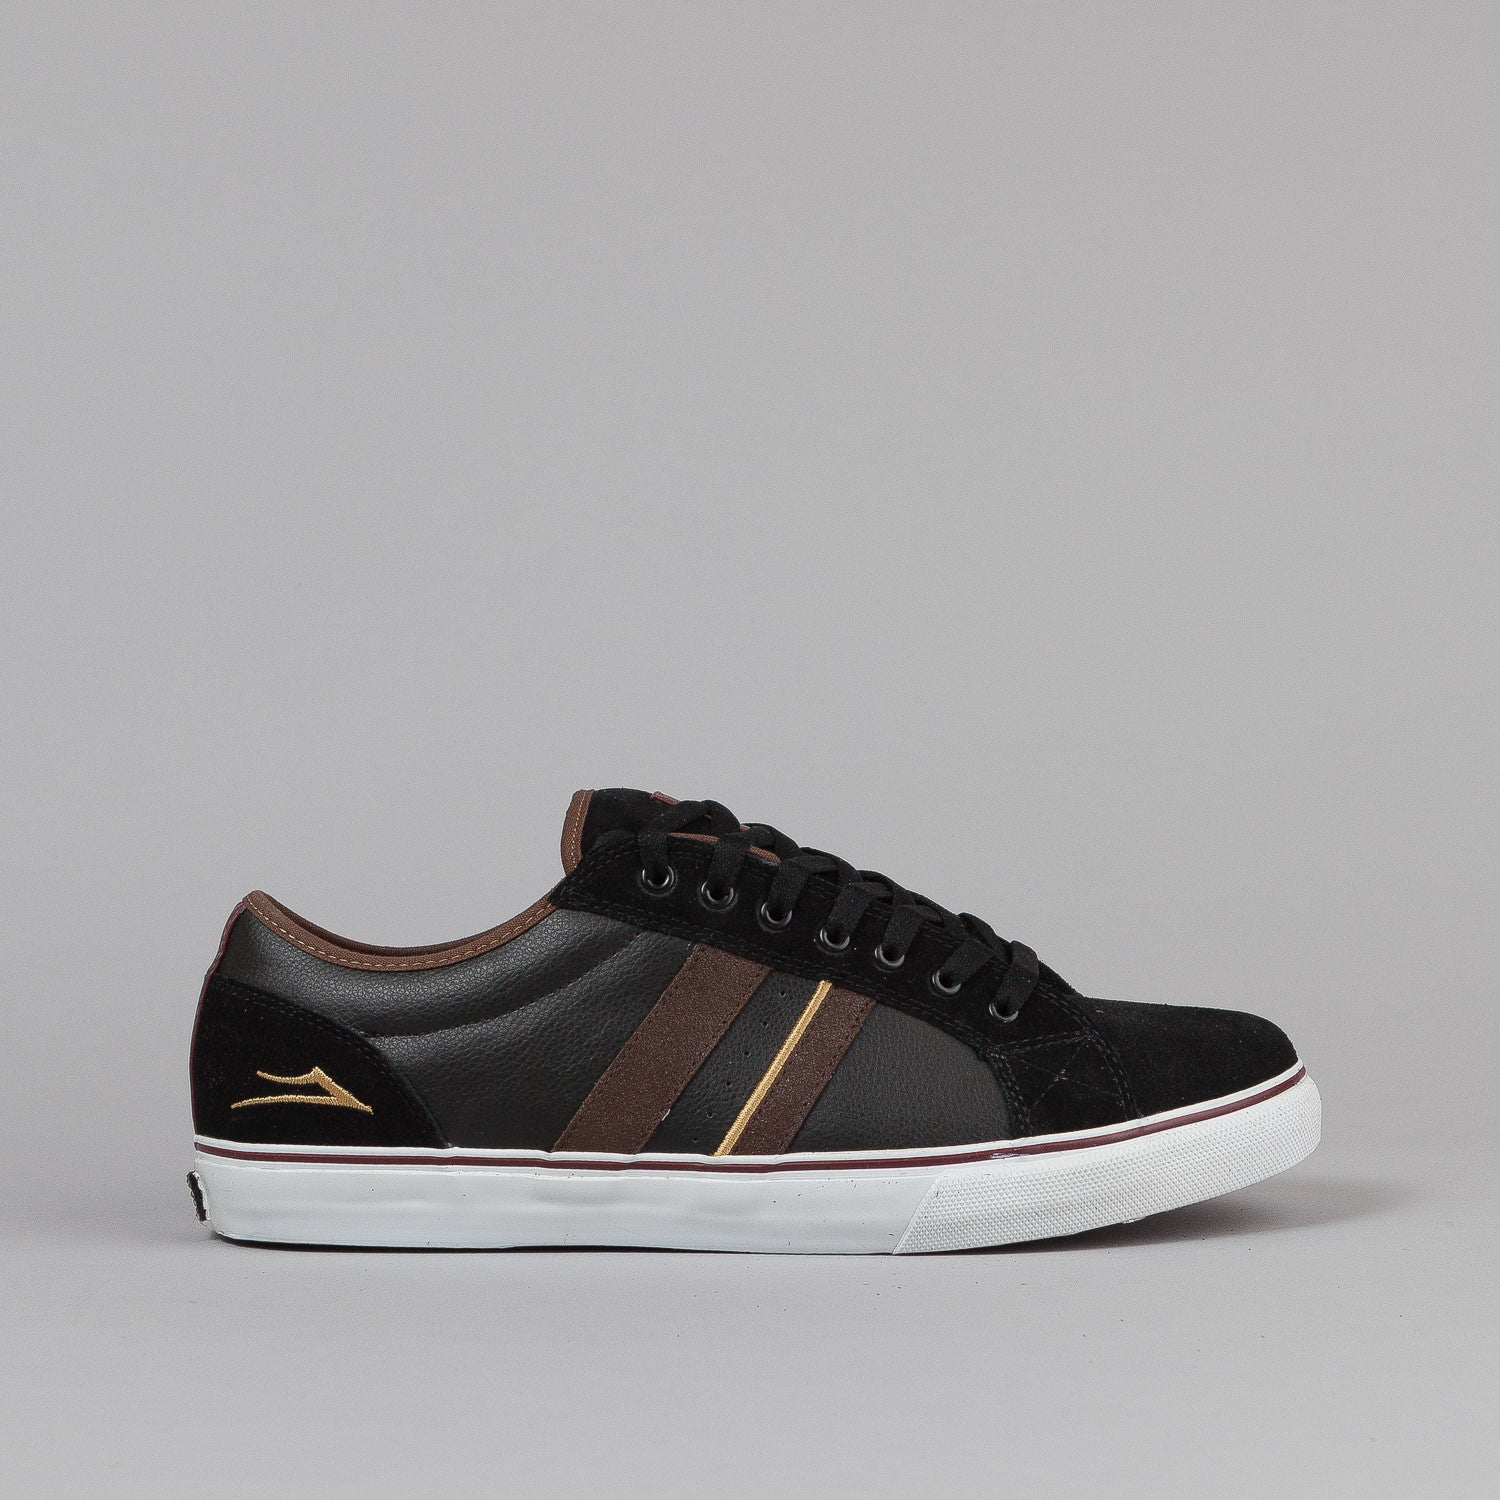 Lakai MJ-2 Select LTD Shoes